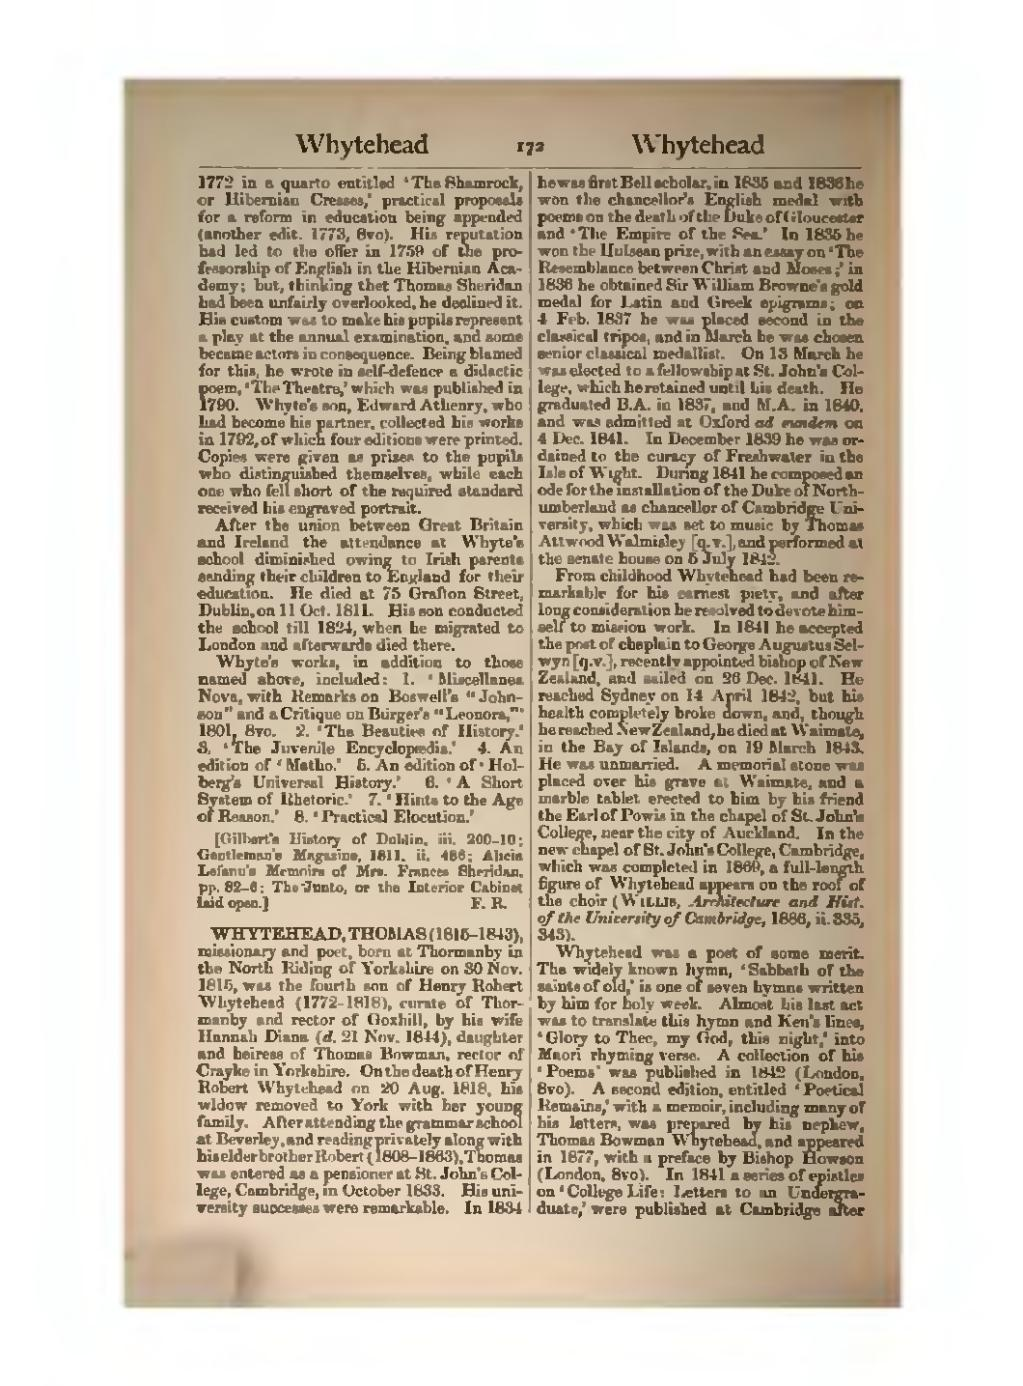 Pagedictionary Of National Biography Volume 61djvu 178 Make A Series Letters From The Led In 1841 Epistles On College Life To An Undergraduate Were Published At Cambridge After